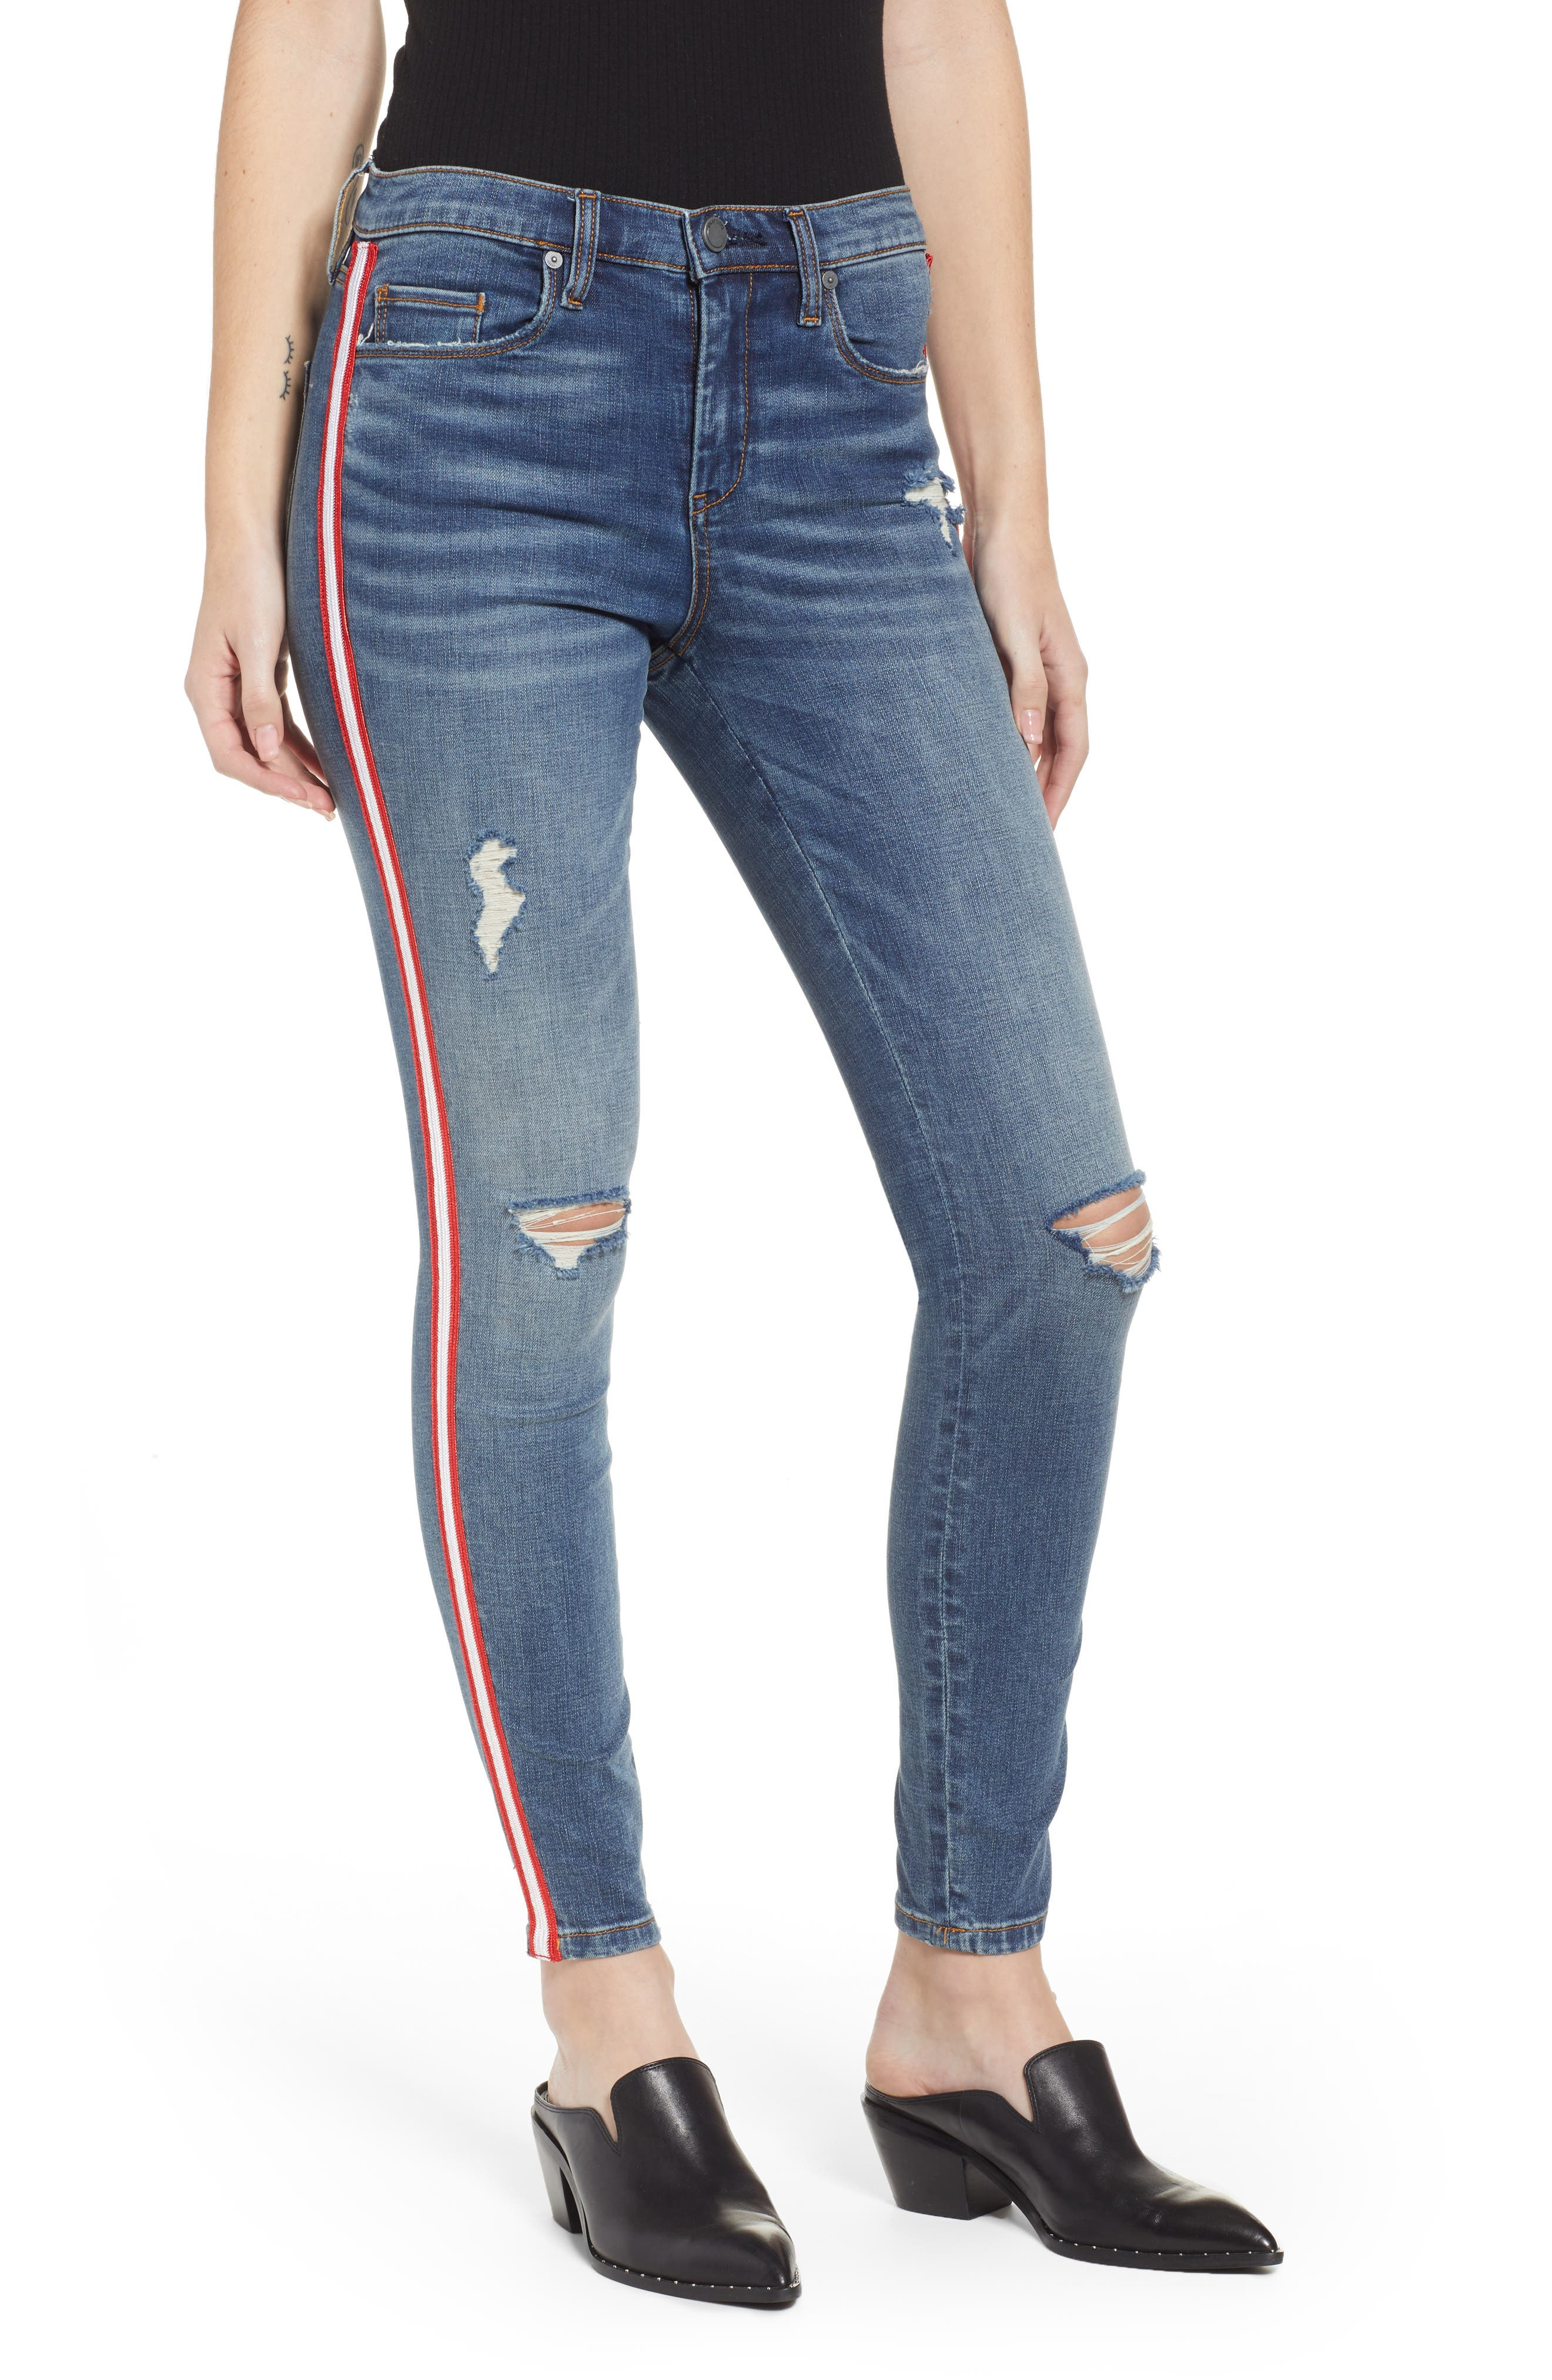 BLANKNYC, Side Stripe Ripped Ankle Skinny Jeans, Main thumbnail 1, color, JERSEY GIRL